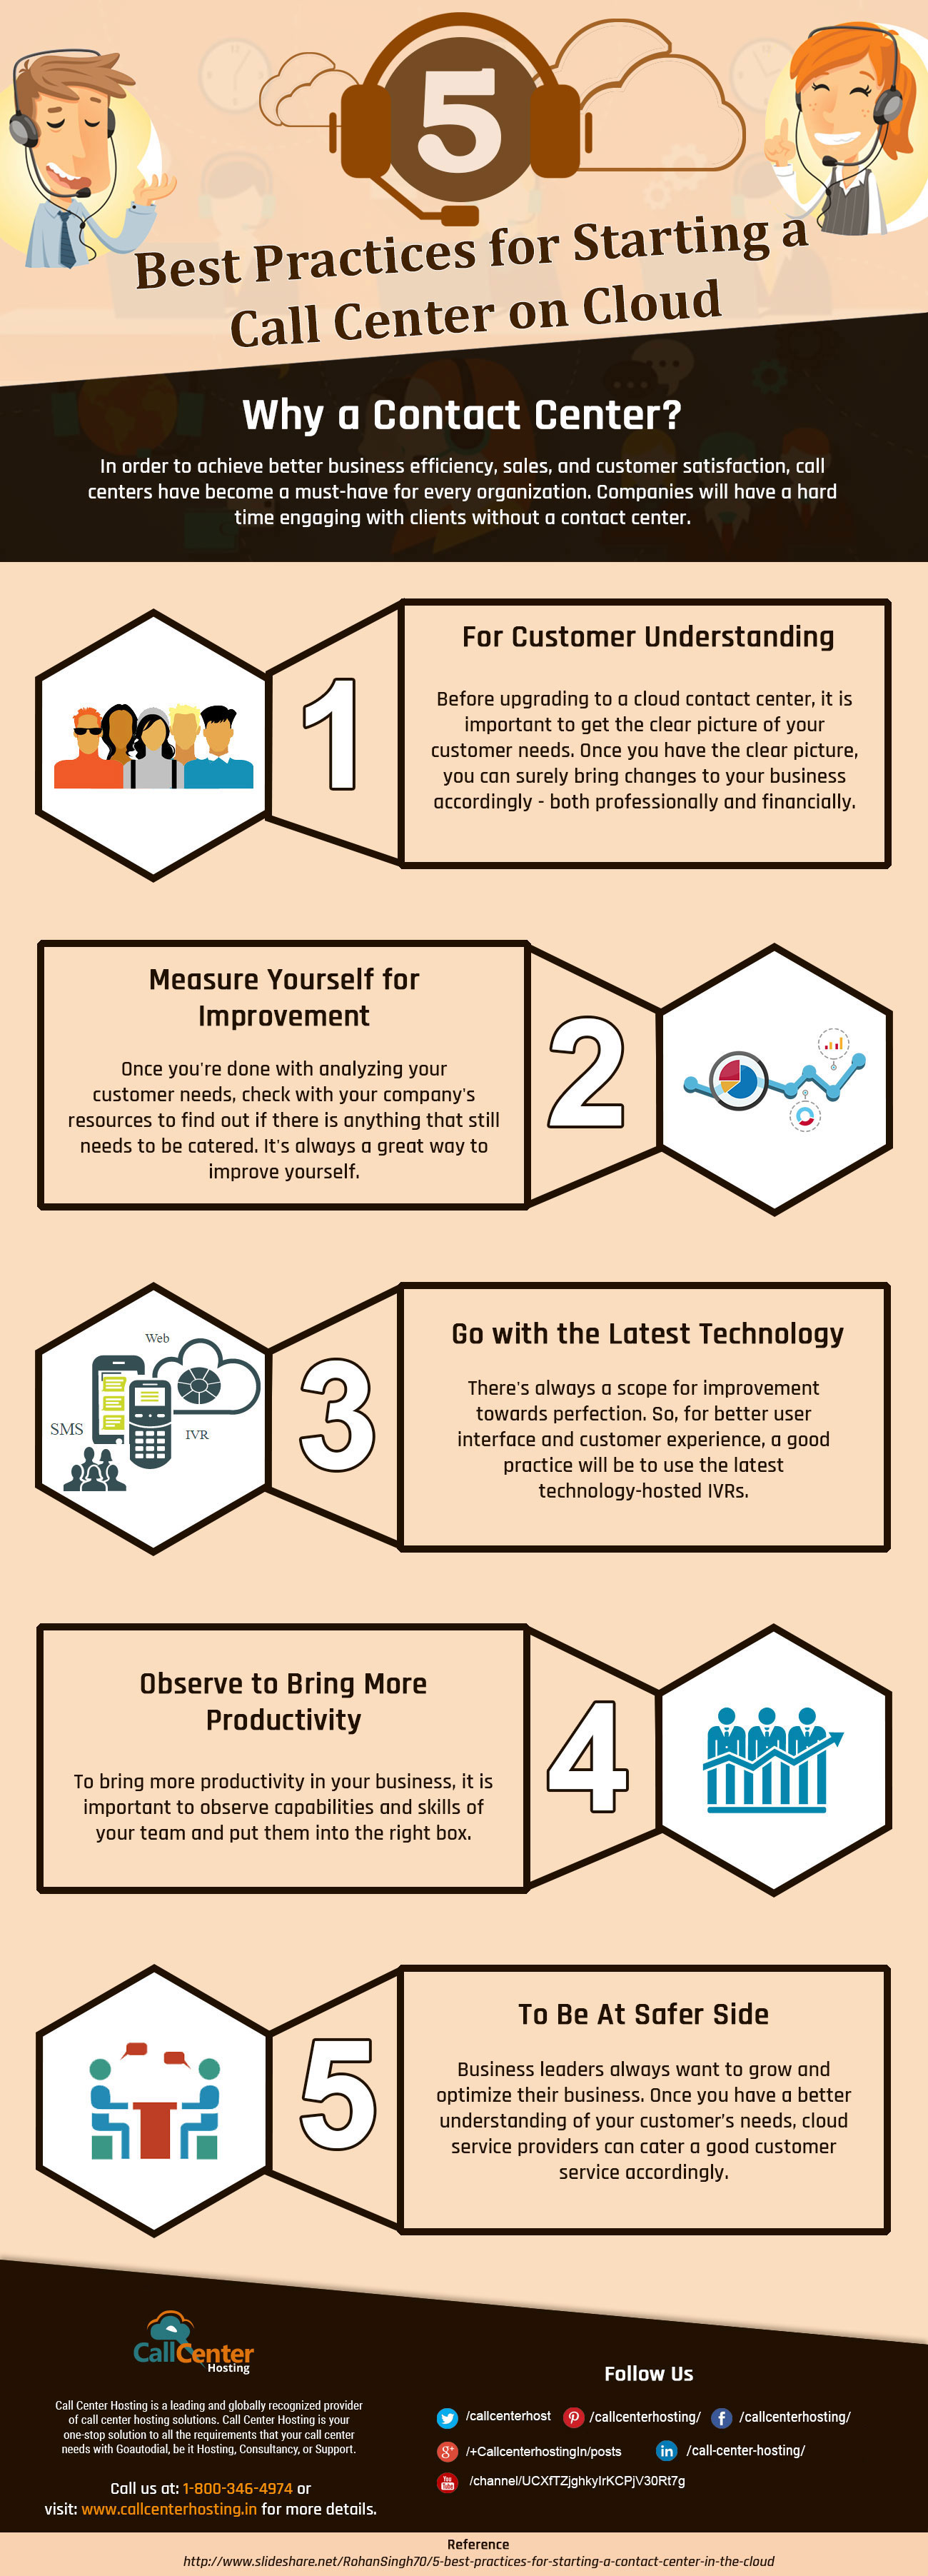 infographic-best-practices-cloud-contact-center